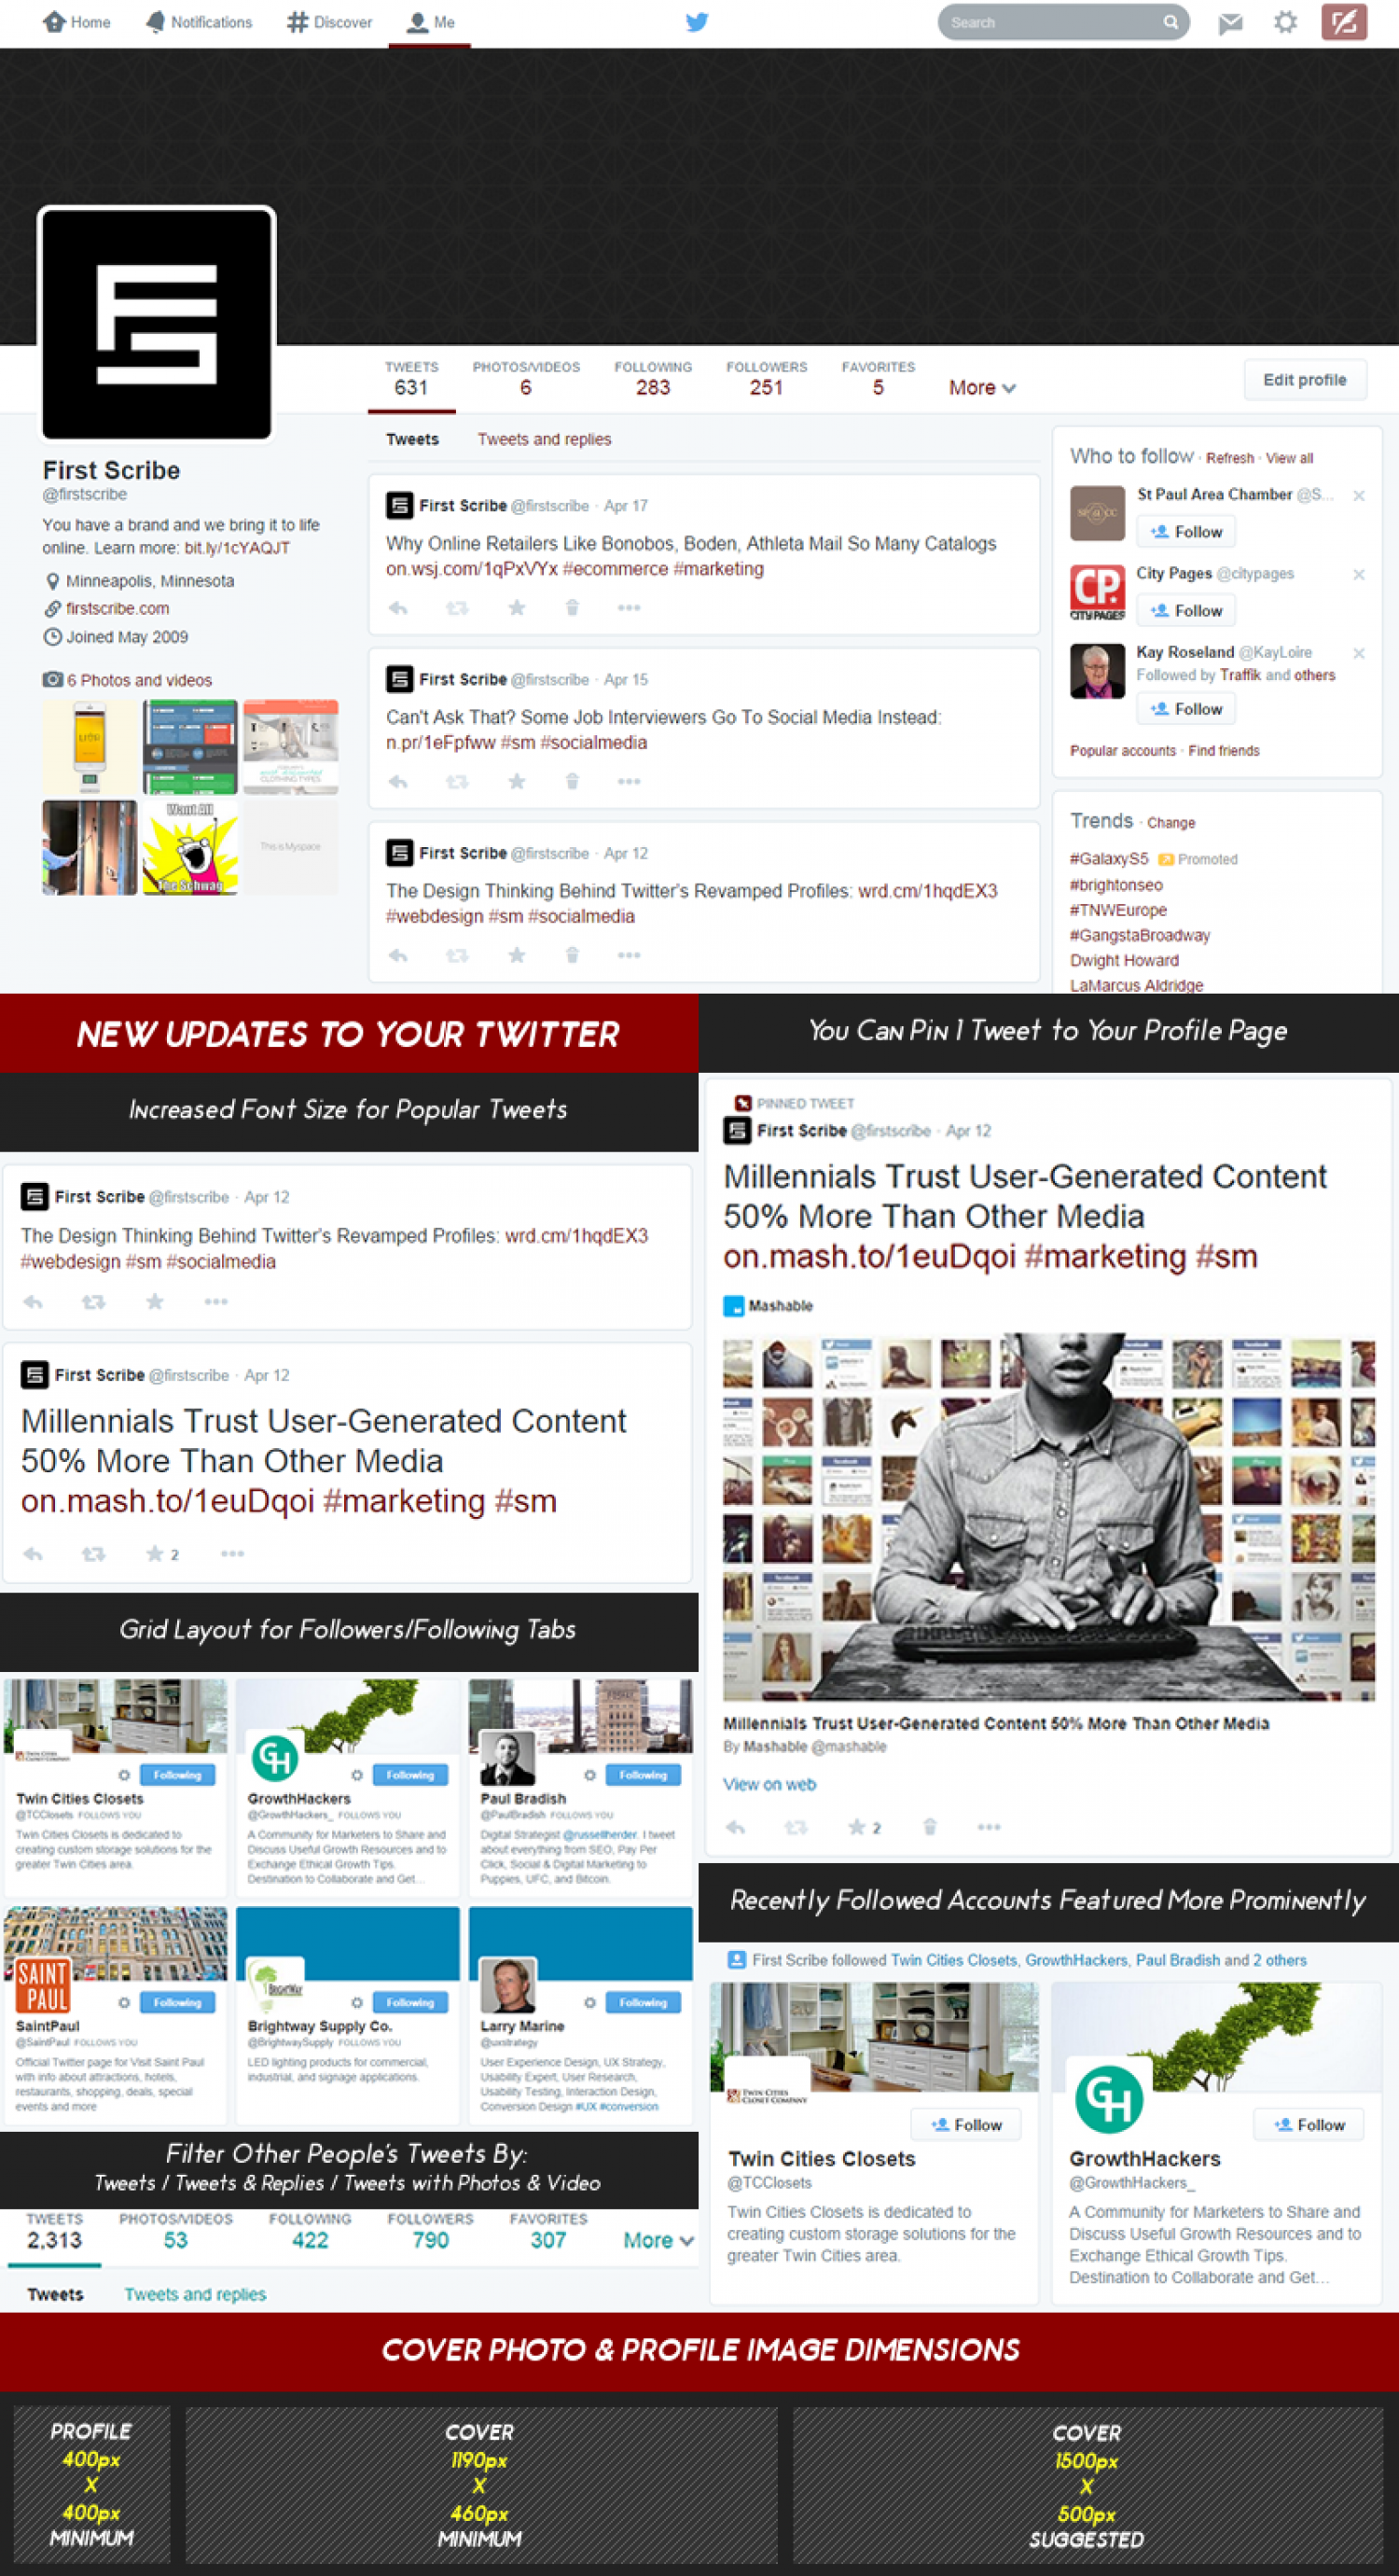 New Twitter Layout Infographic Infographic